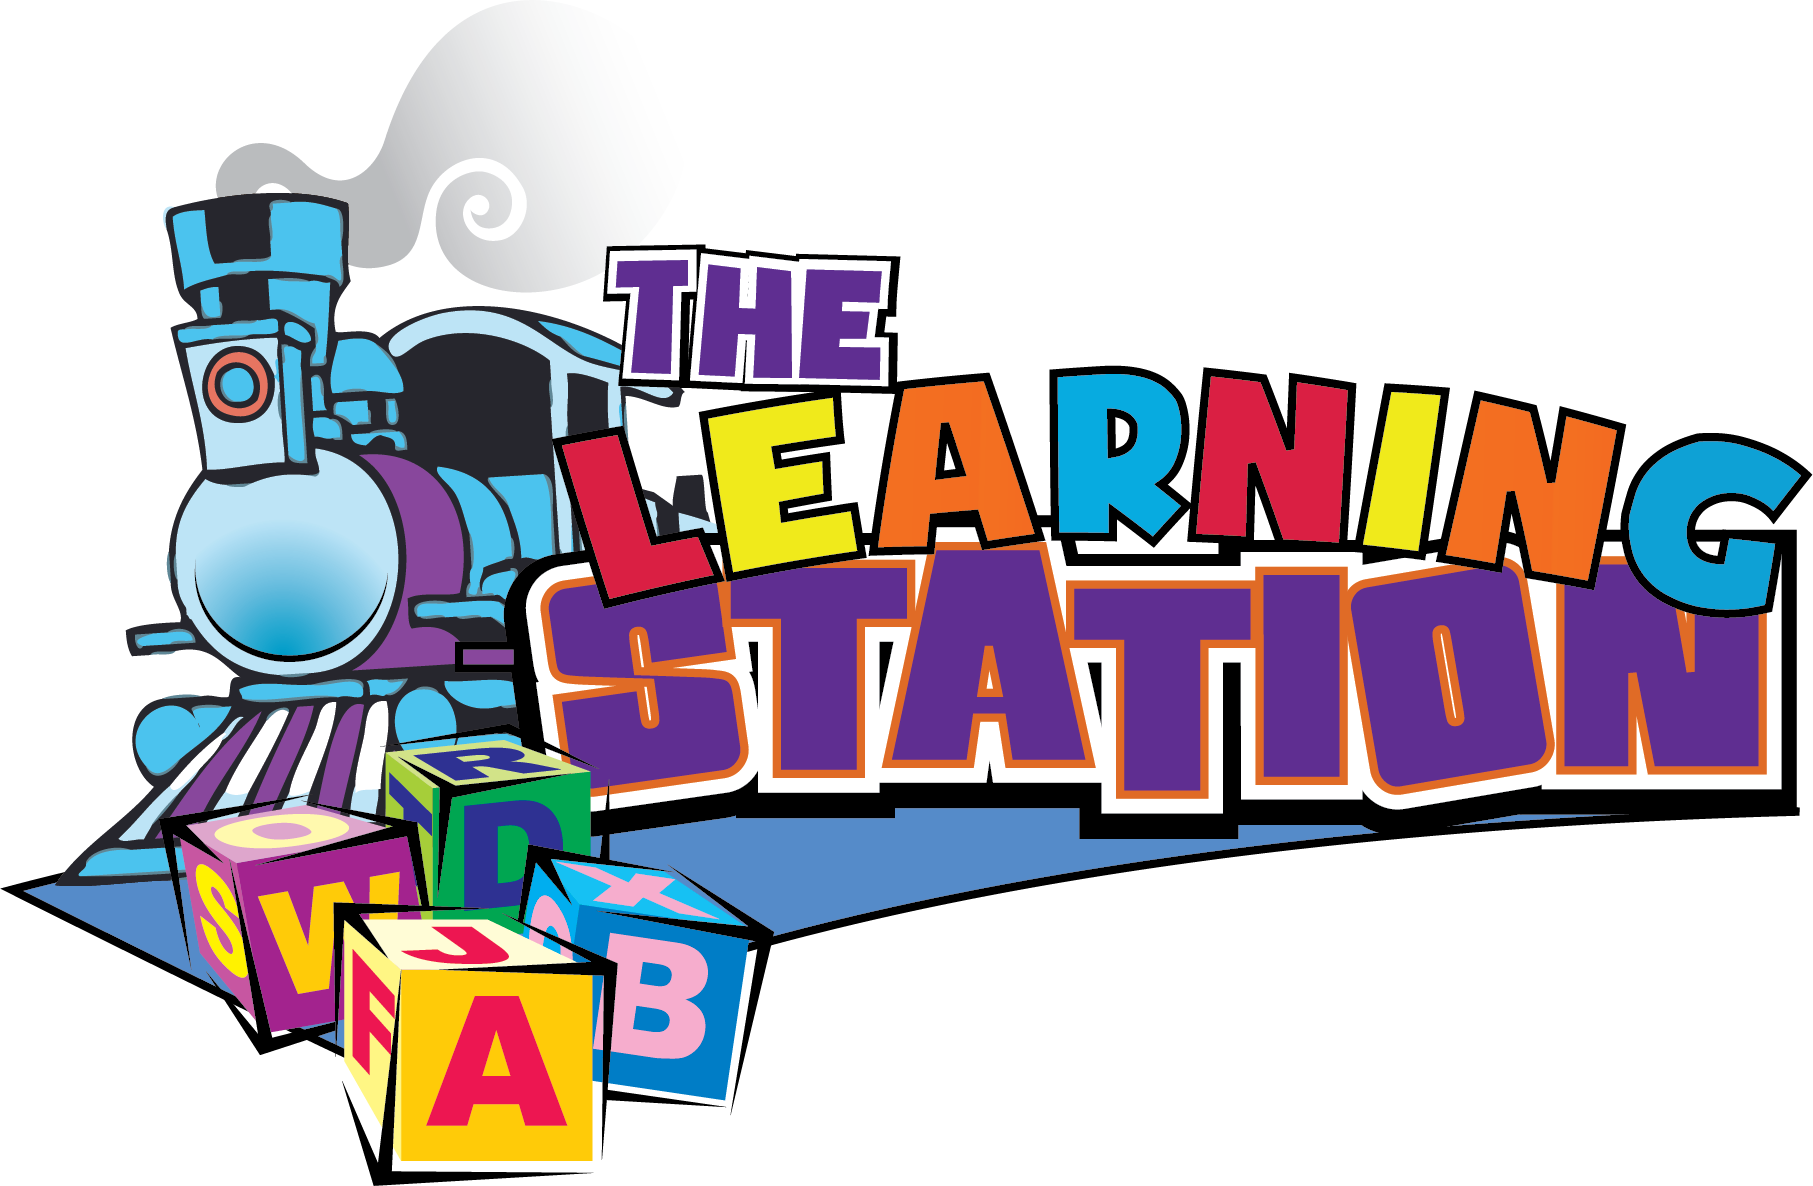 Proud assessment learning